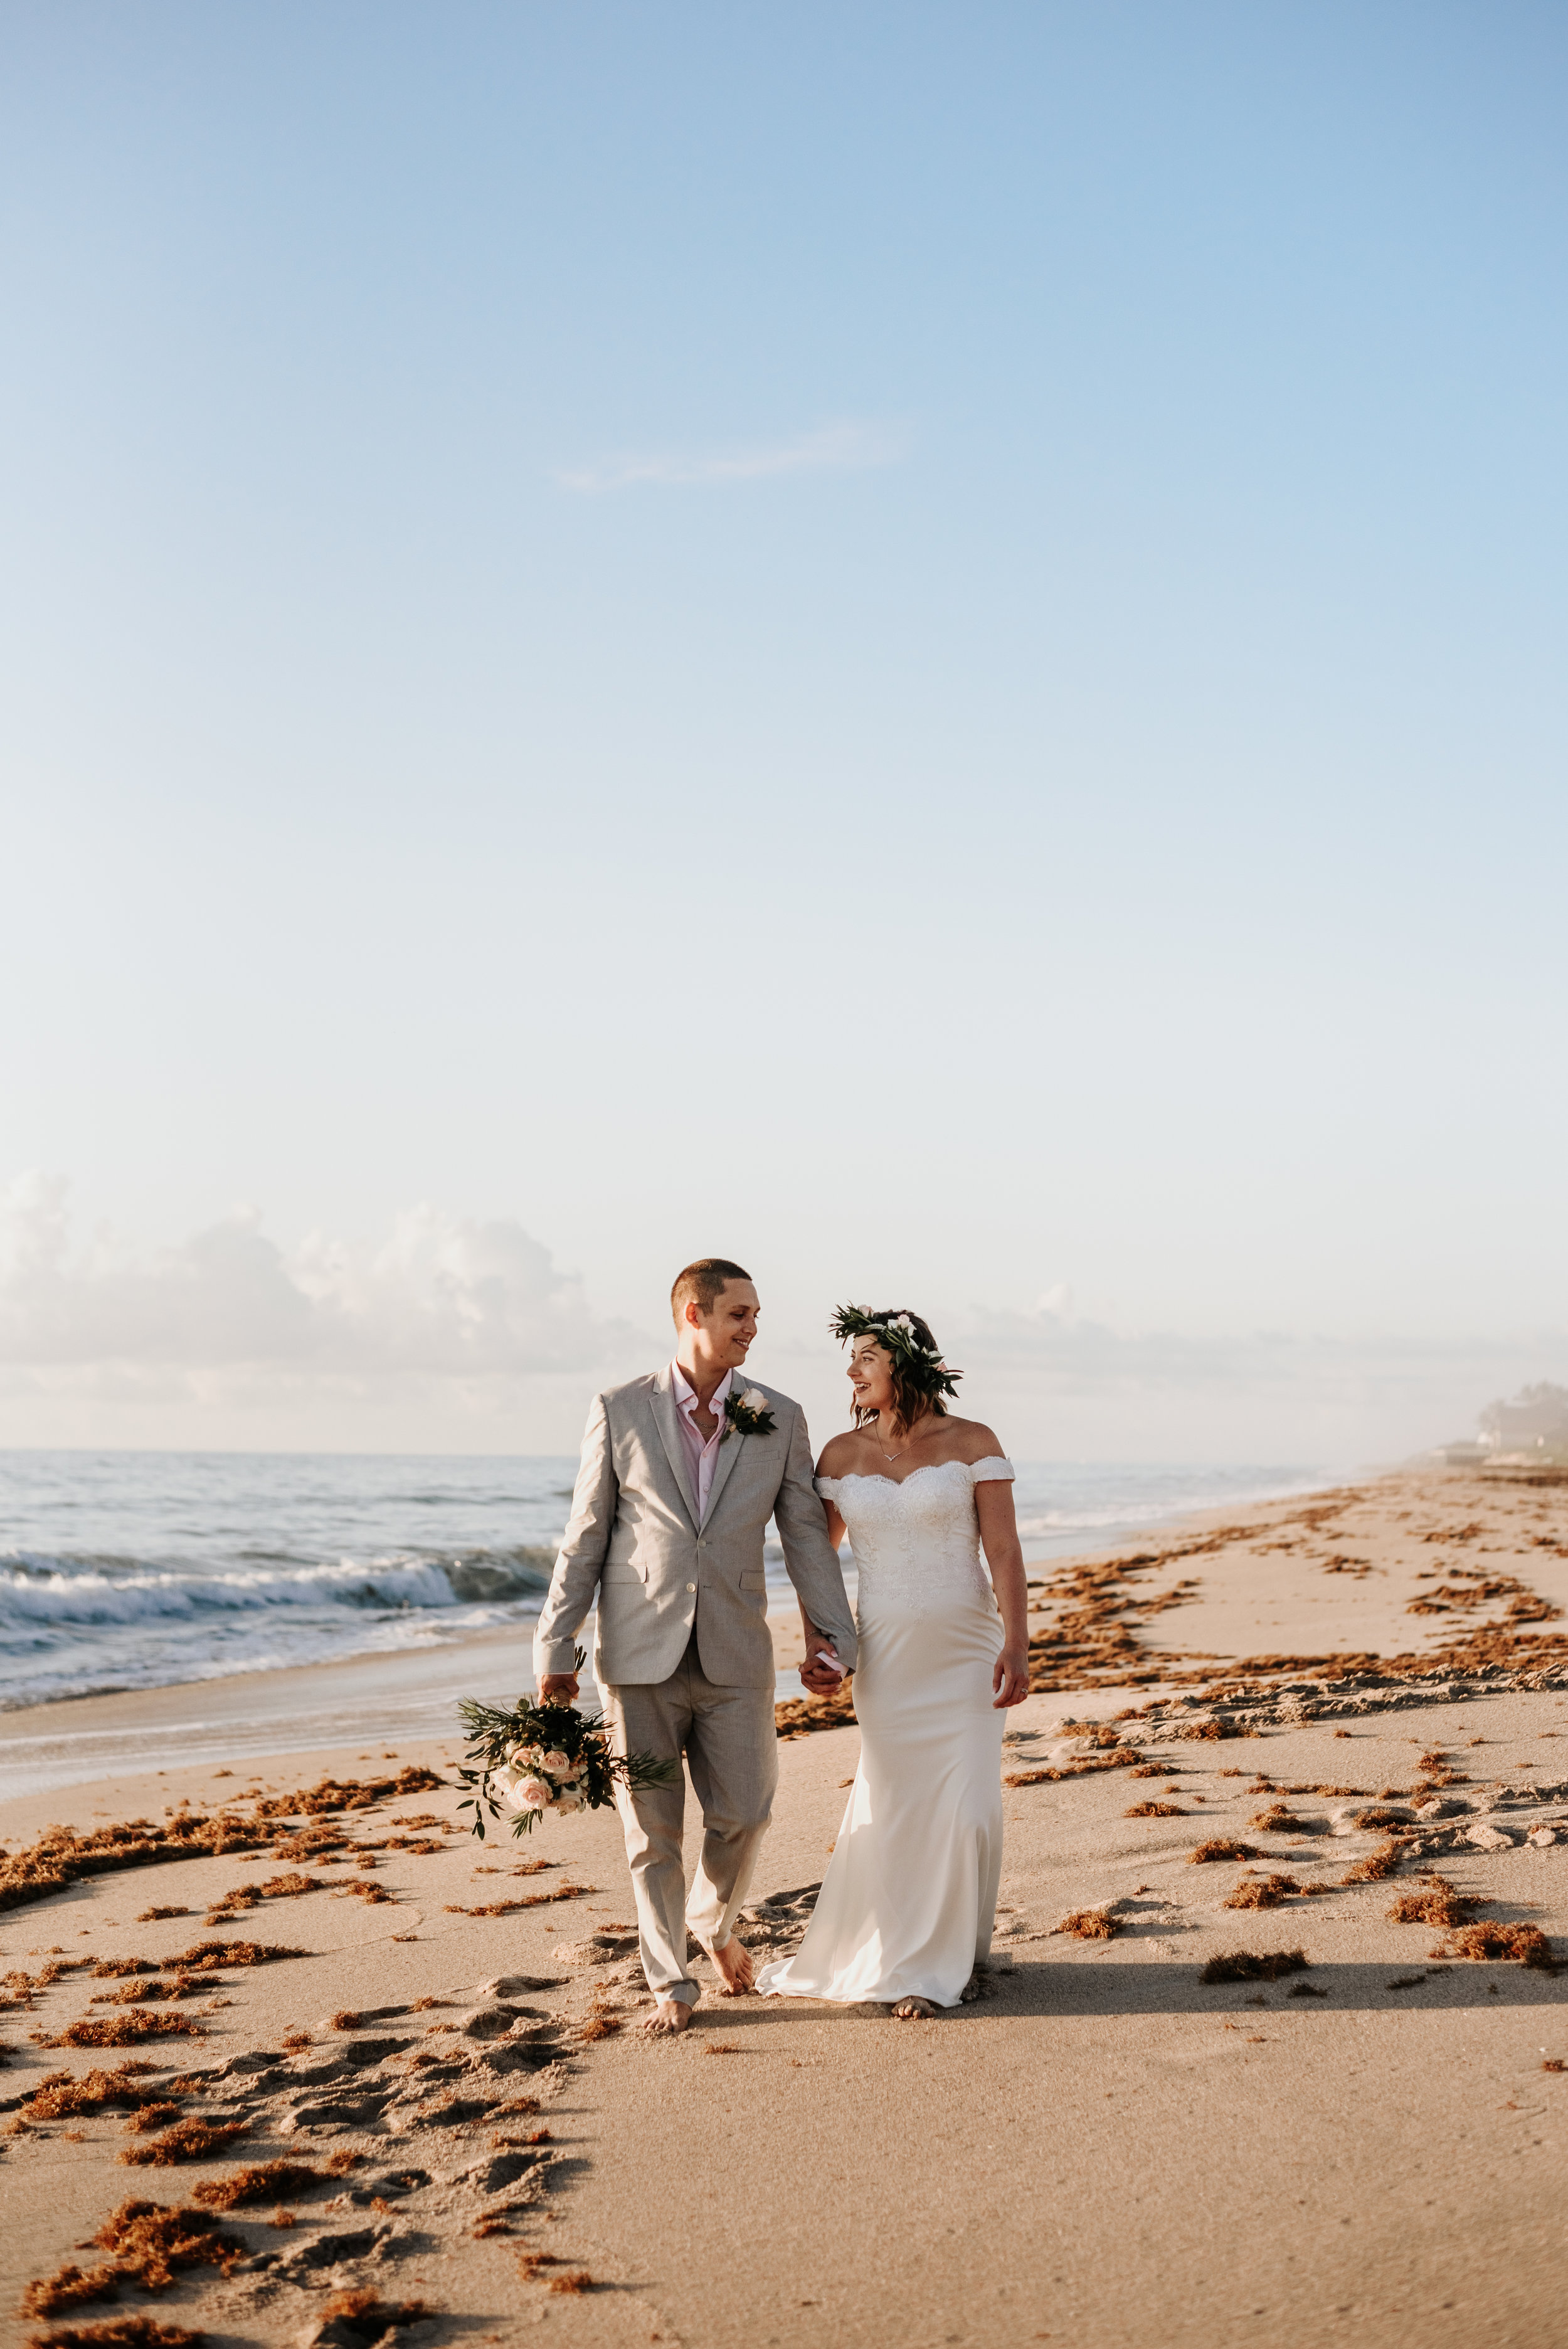 Crystal-Nick-Wedding-Vero-Beach-Florida-Treasure-Shores-Beach-Photography-by-V-3006.jpg